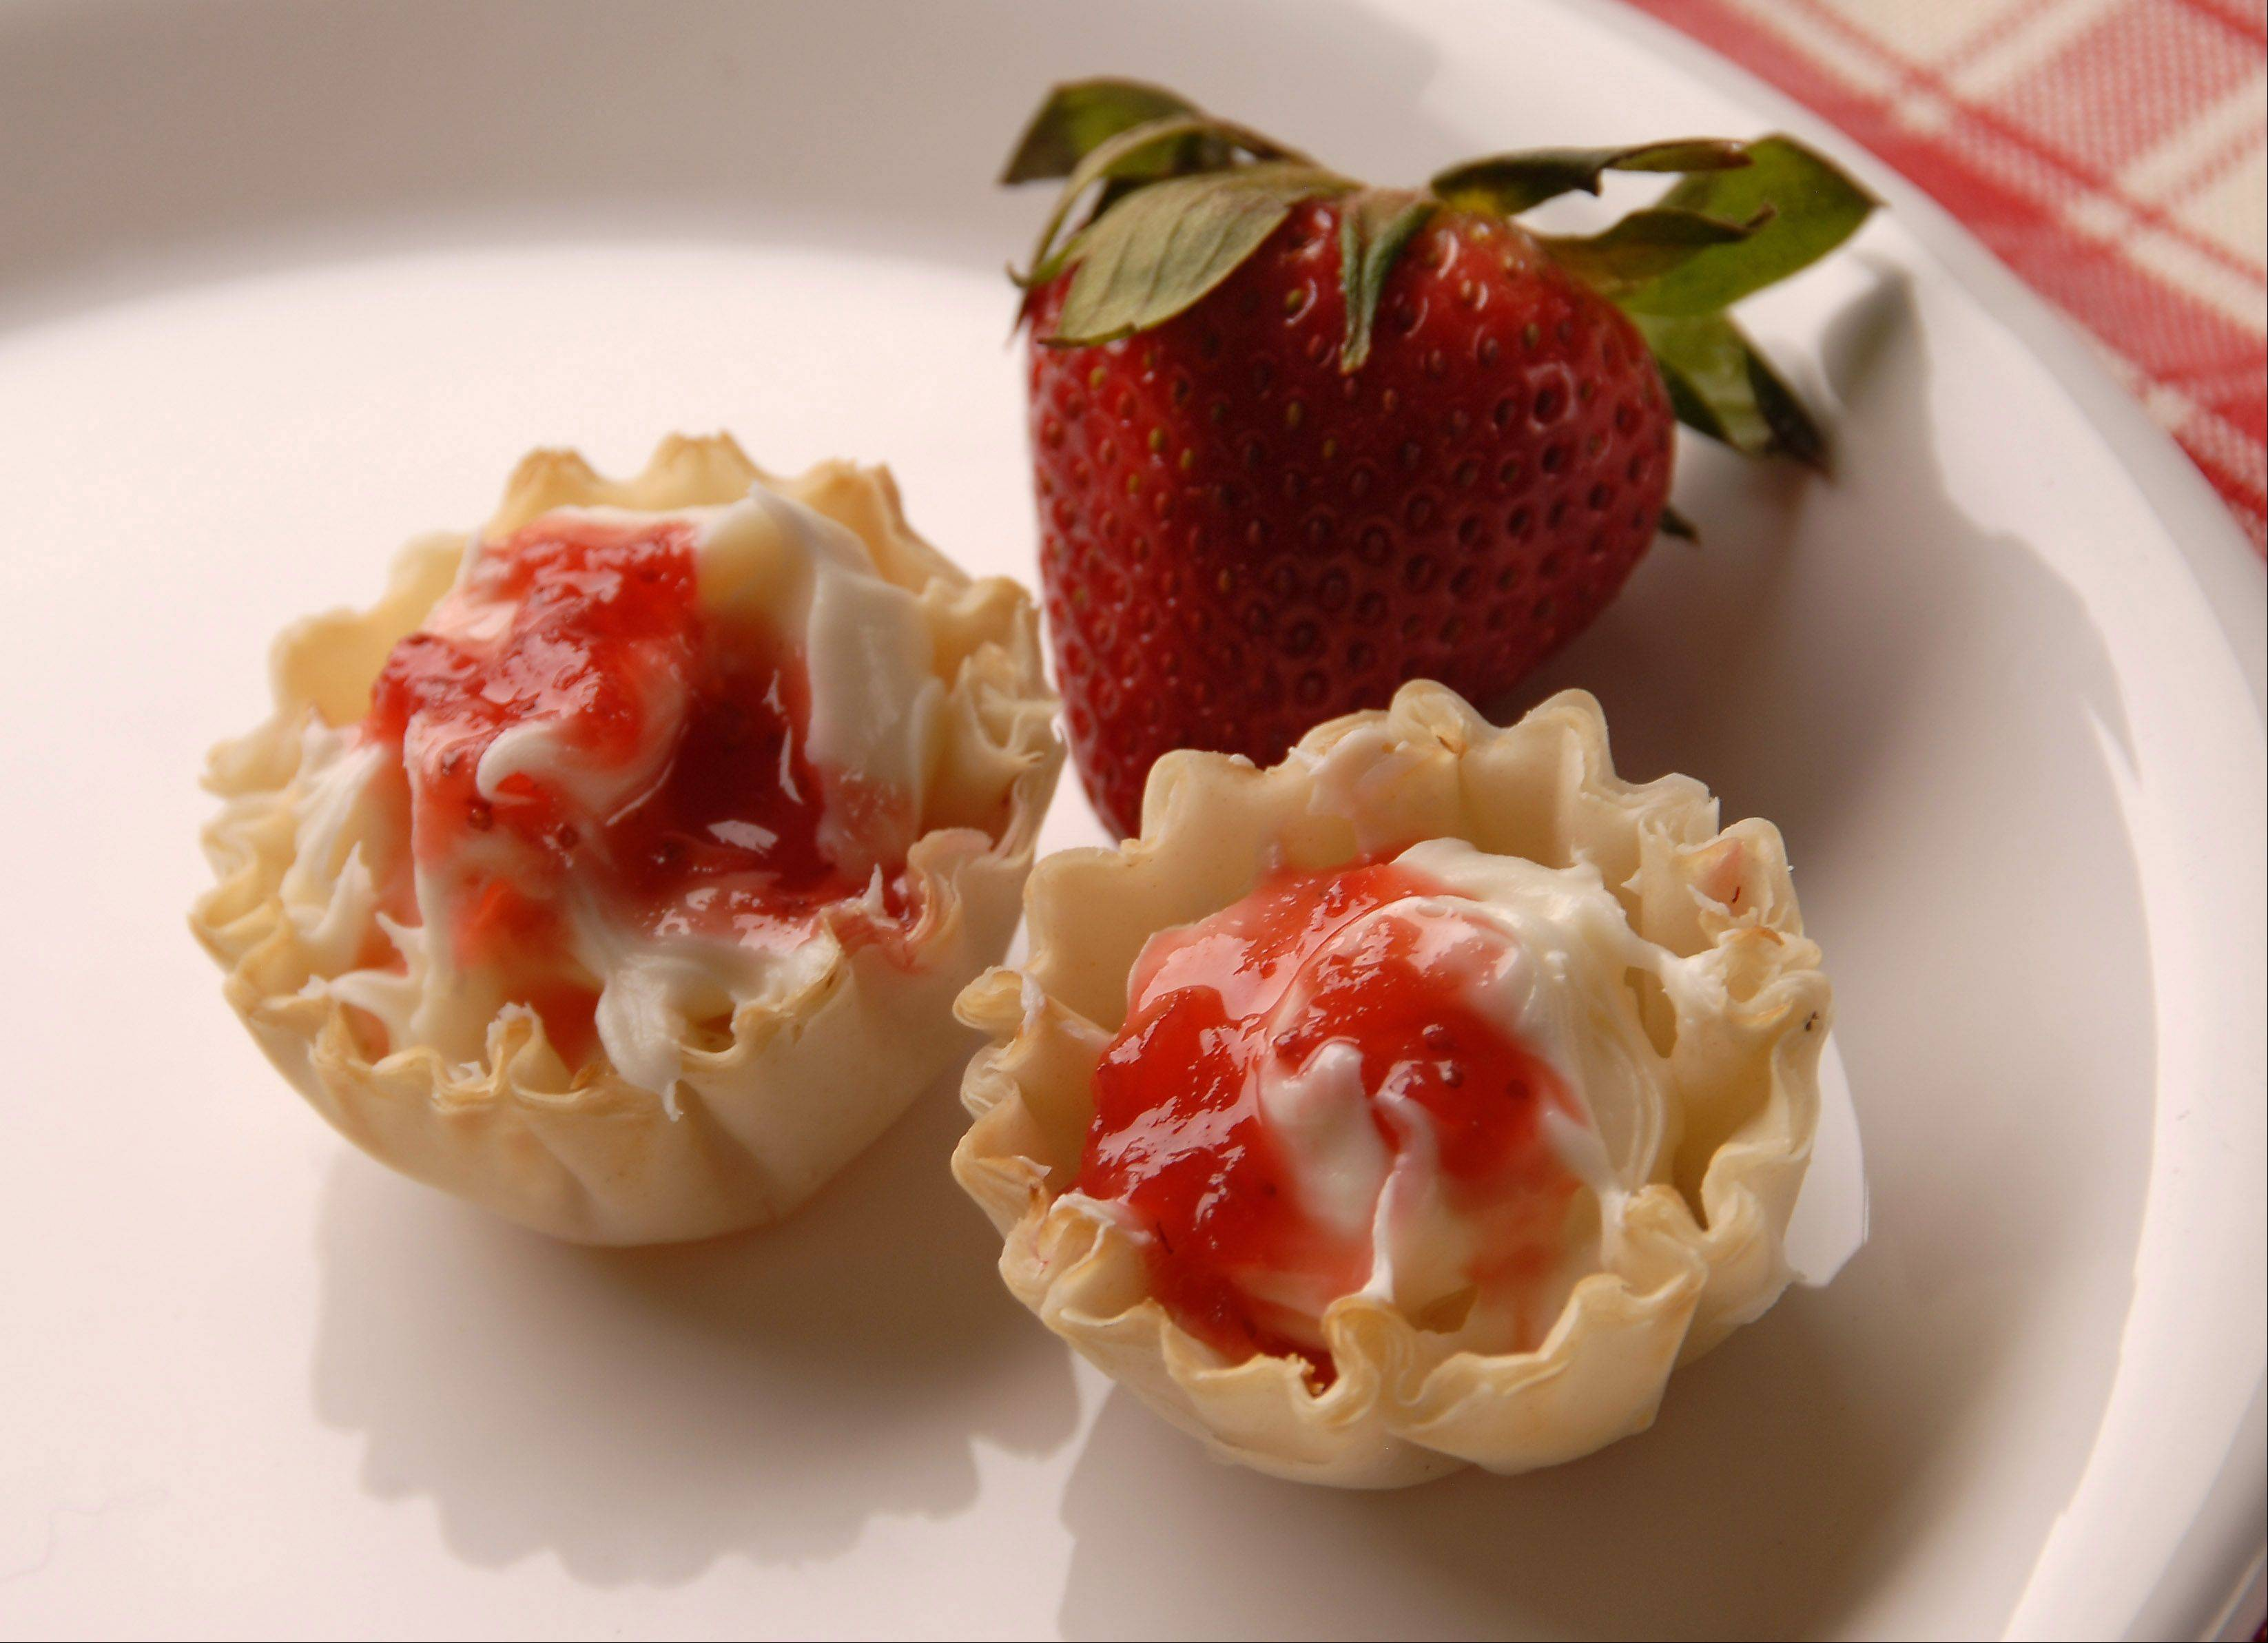 Mini-tarts with strawberry jam.